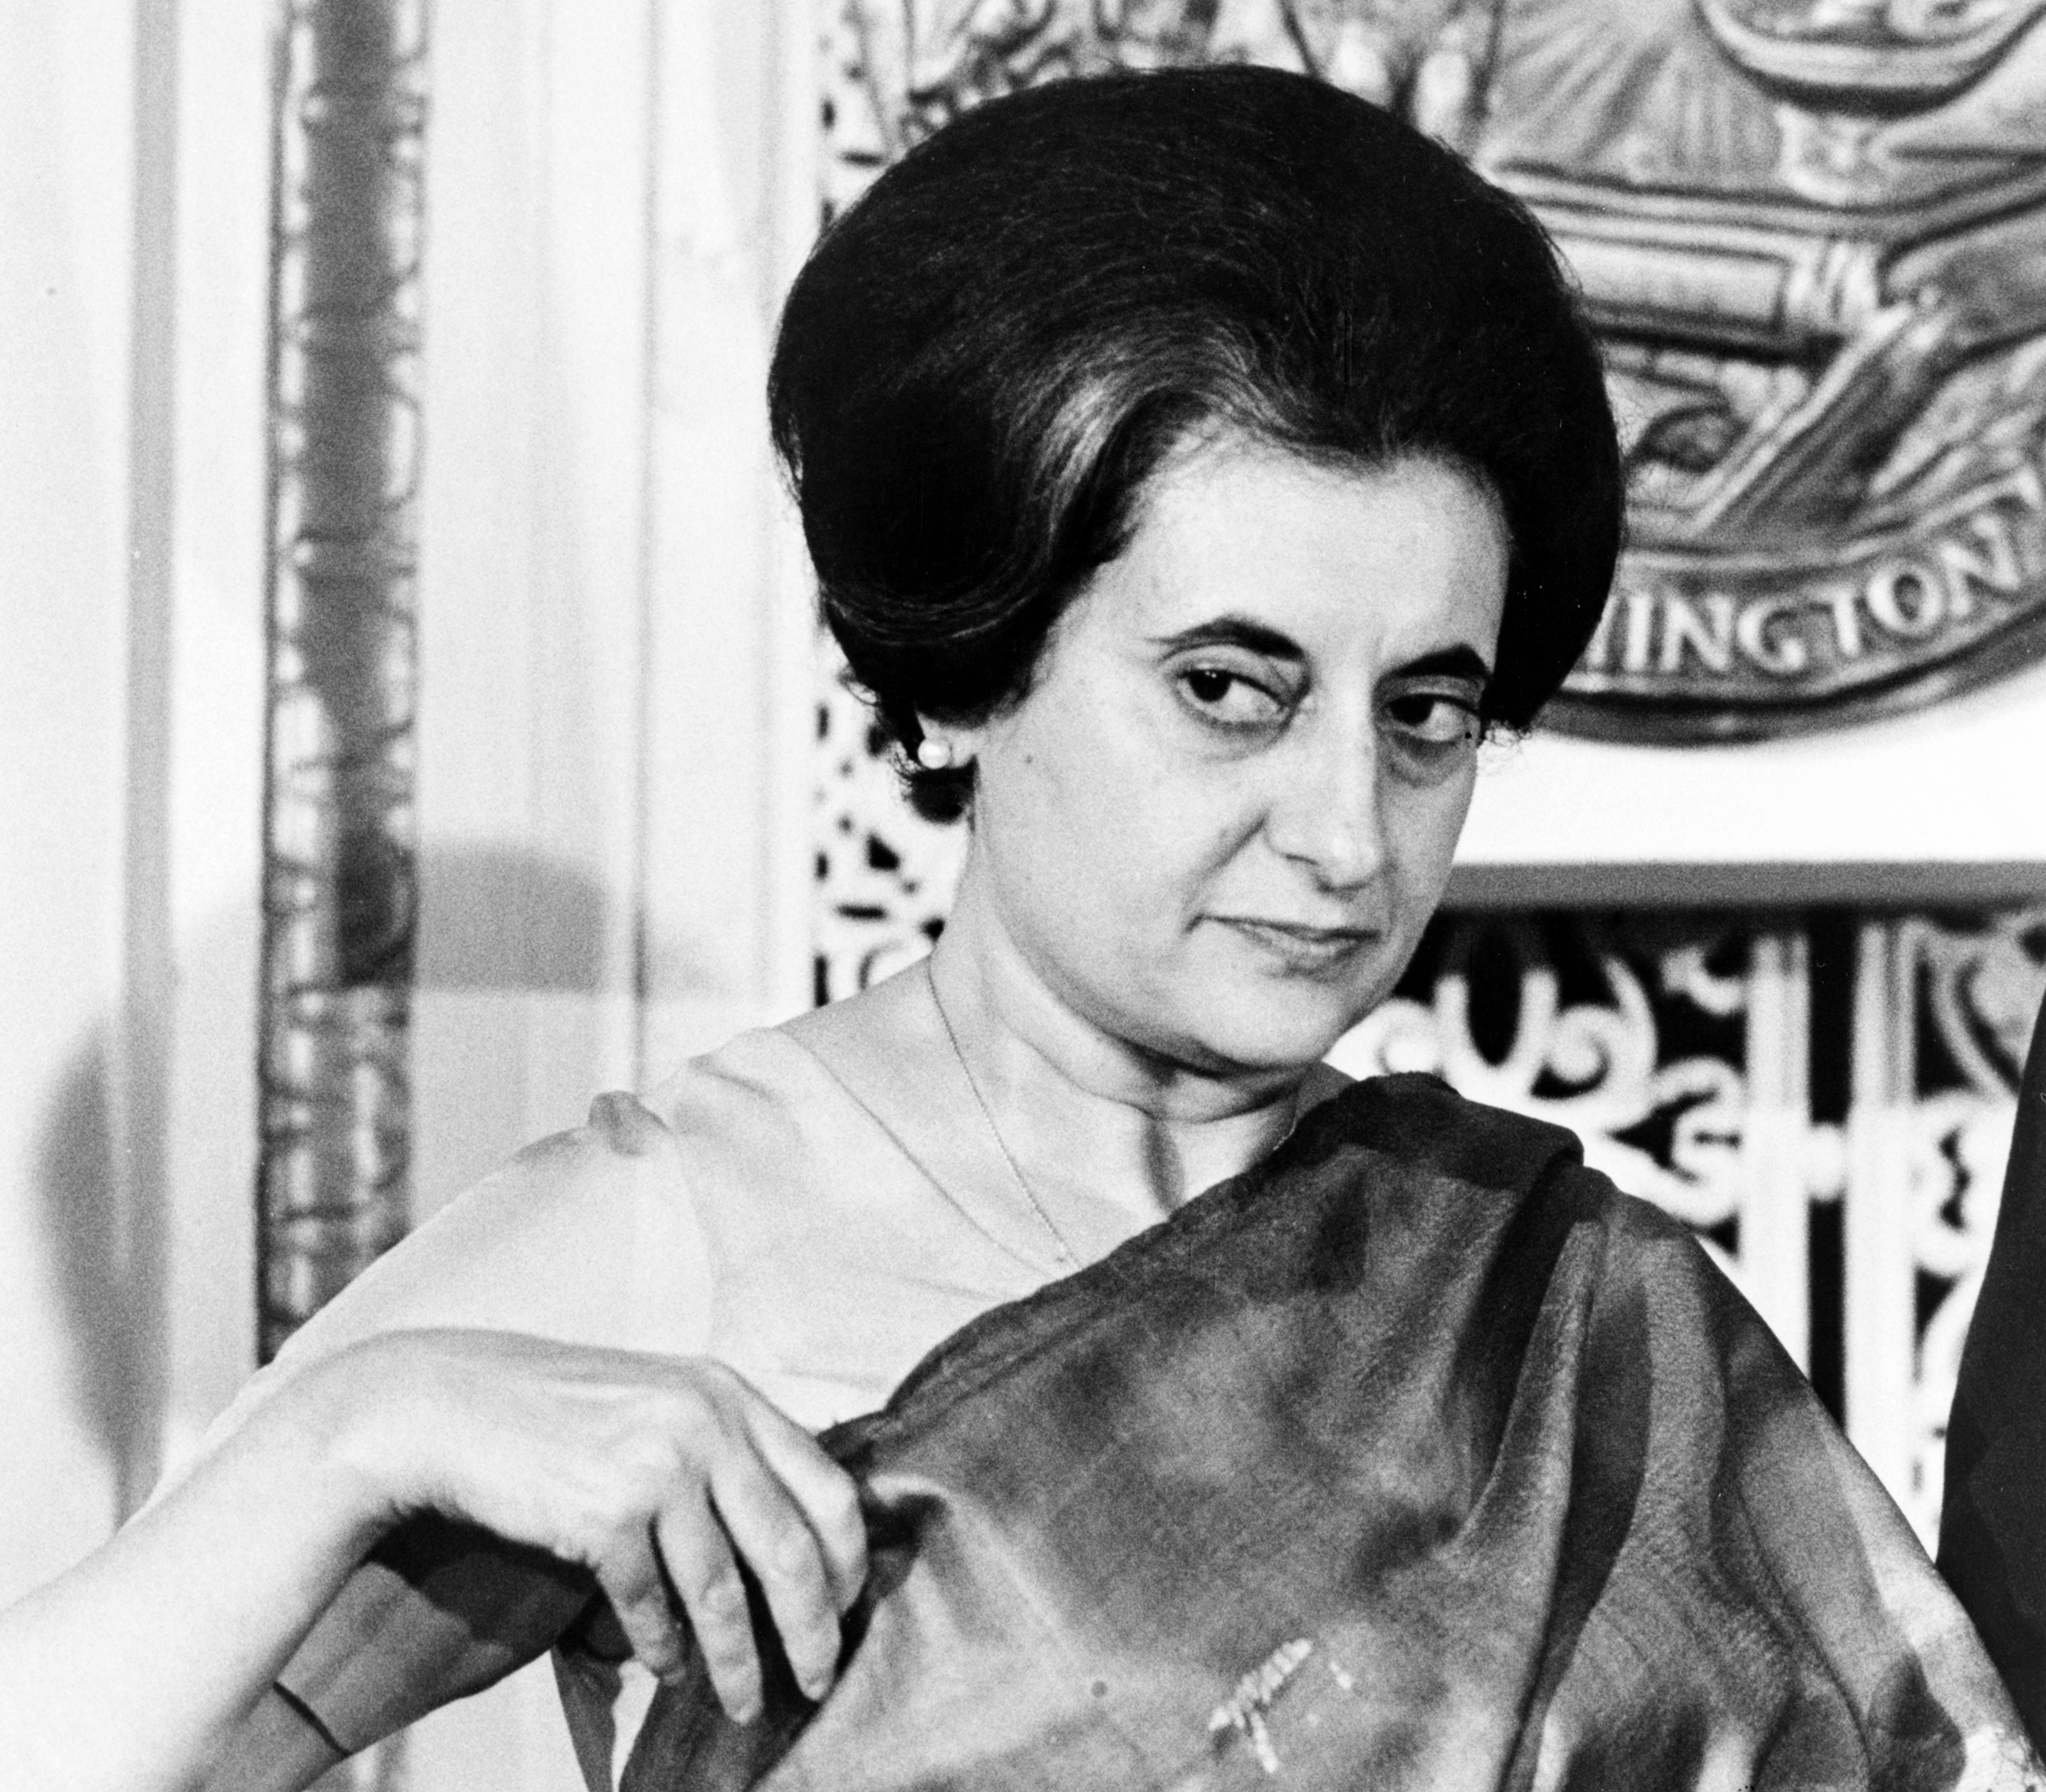 Indira Gandhi was very popular in the Soviet Union. Source: Public Domain